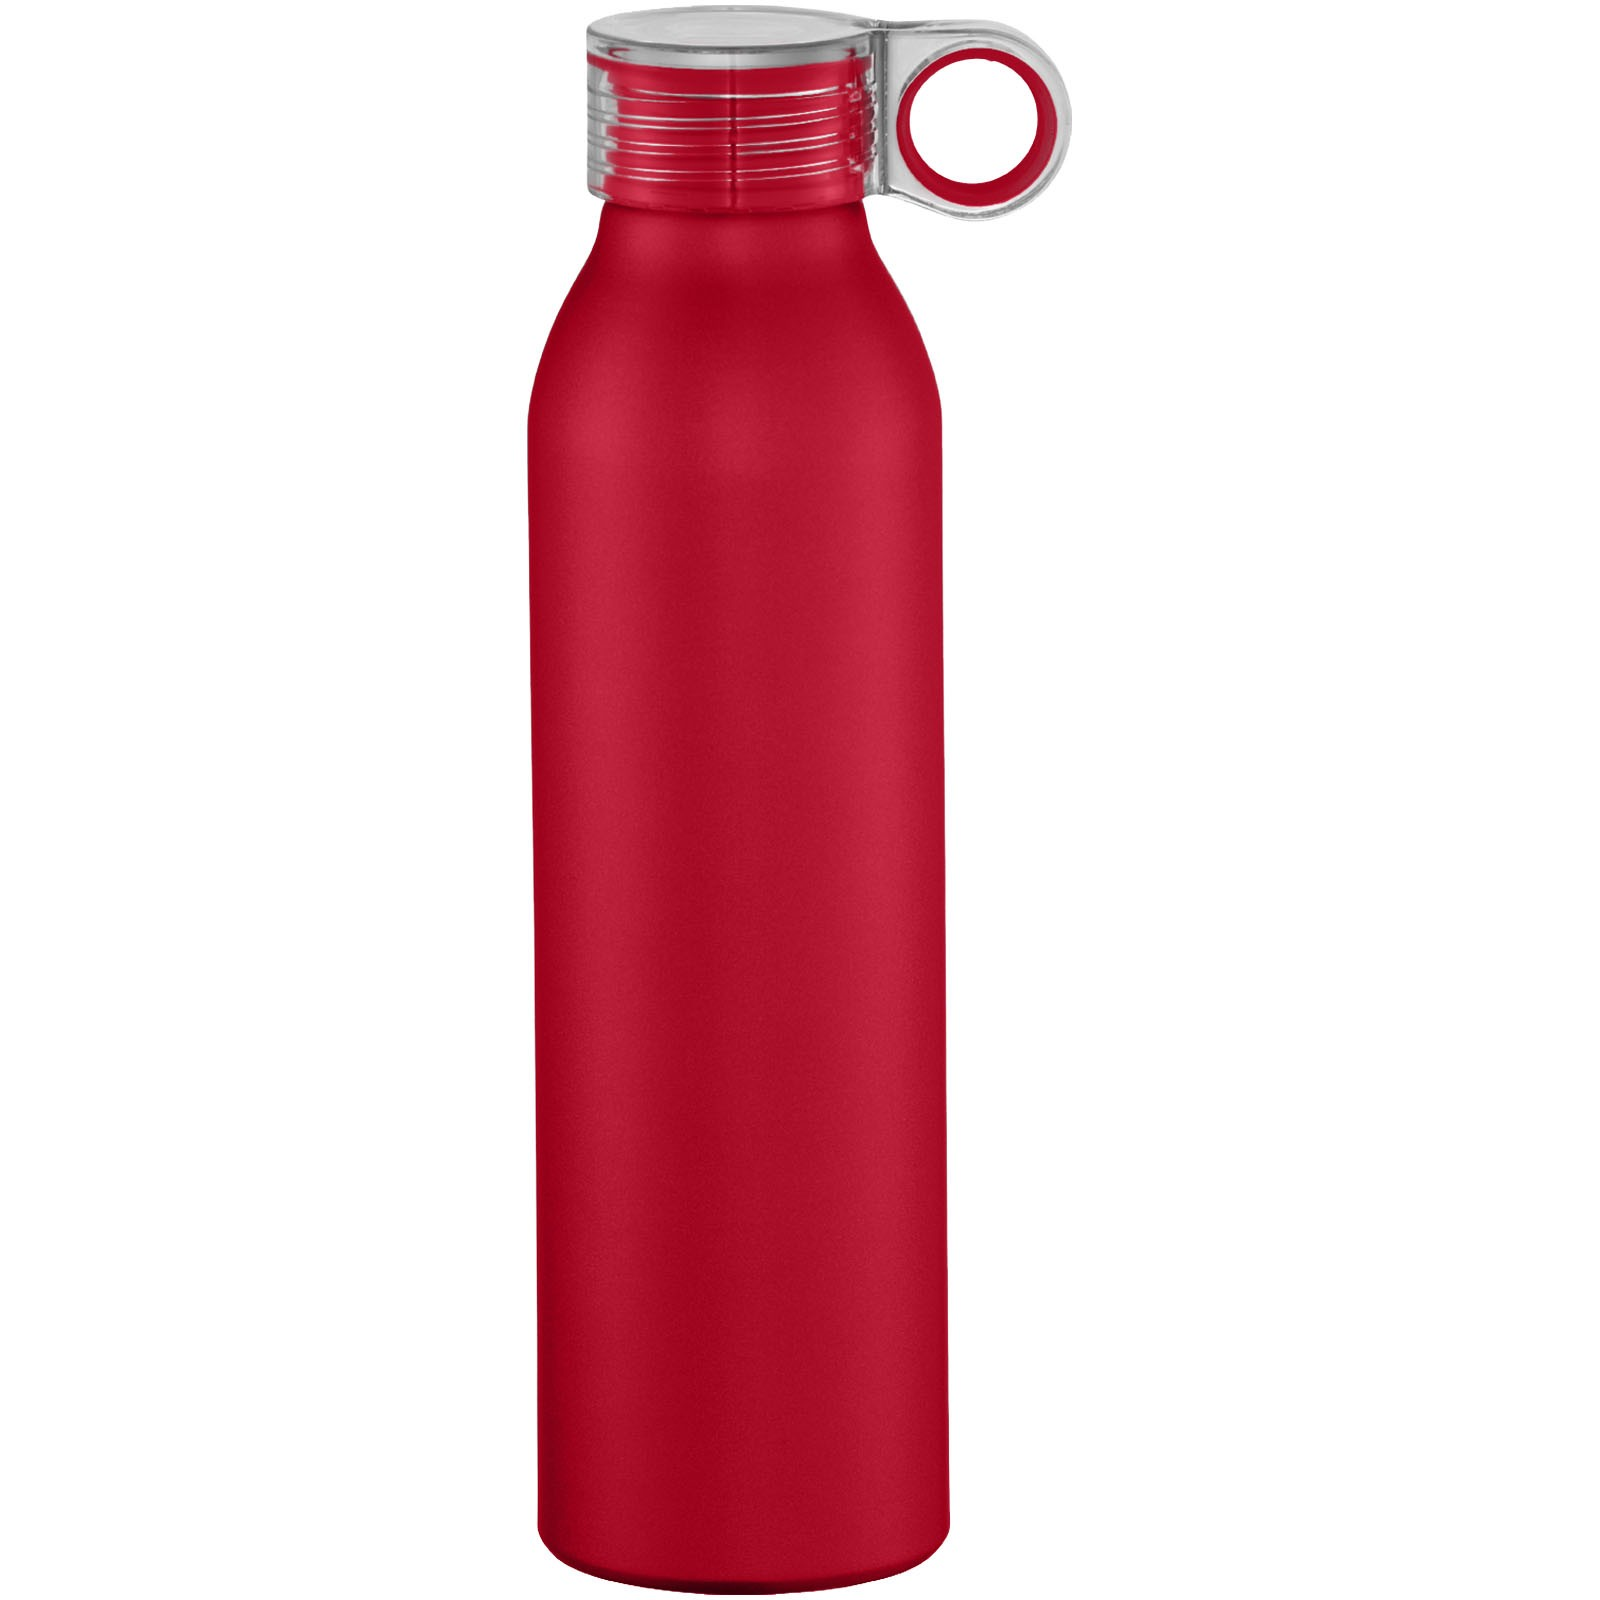 Grom 650 ml sports bottle - Red